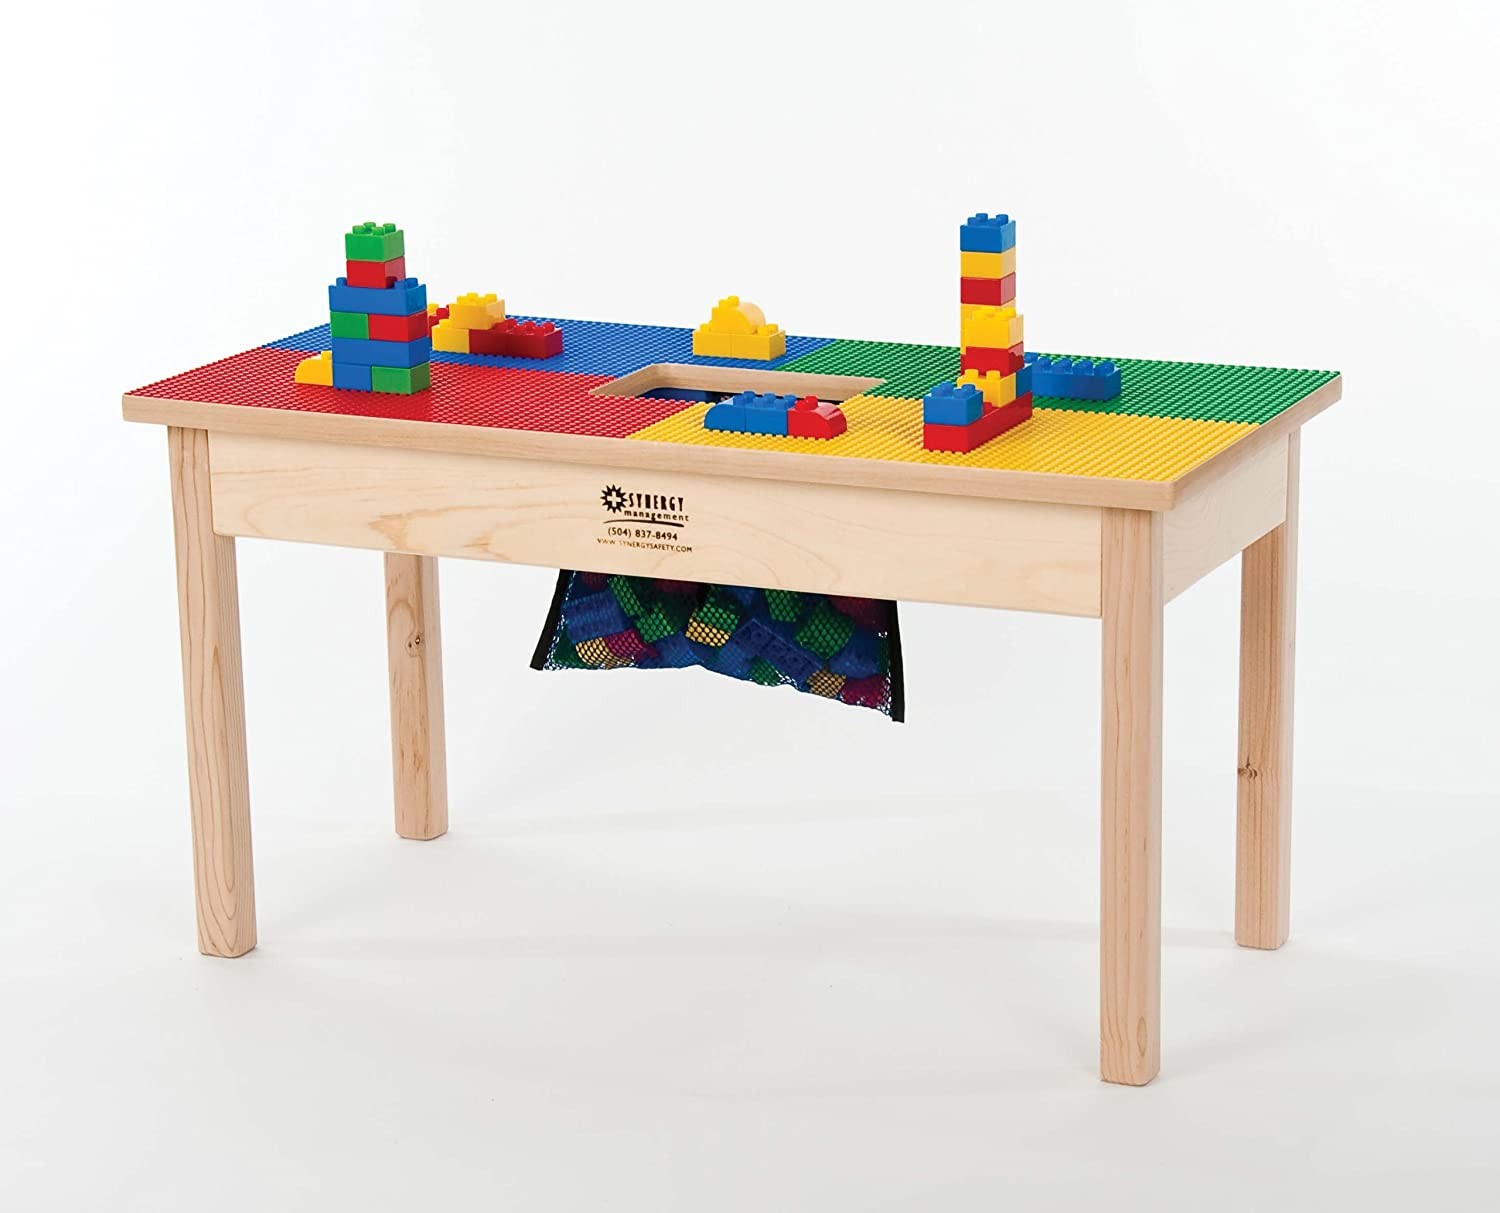 HEAVY DUTY DUPLO COMPATIBLE BLOCK TABLE with Built-in Lego Storage(patent)-32 x 16--MADE IN USA! PREASSEMBLED-Deluxe Series-Solid Hardwood Legs & Frame-BUILT TO LAST -AGES 1 TO 5 Playcenter Authority BTS 16 LG